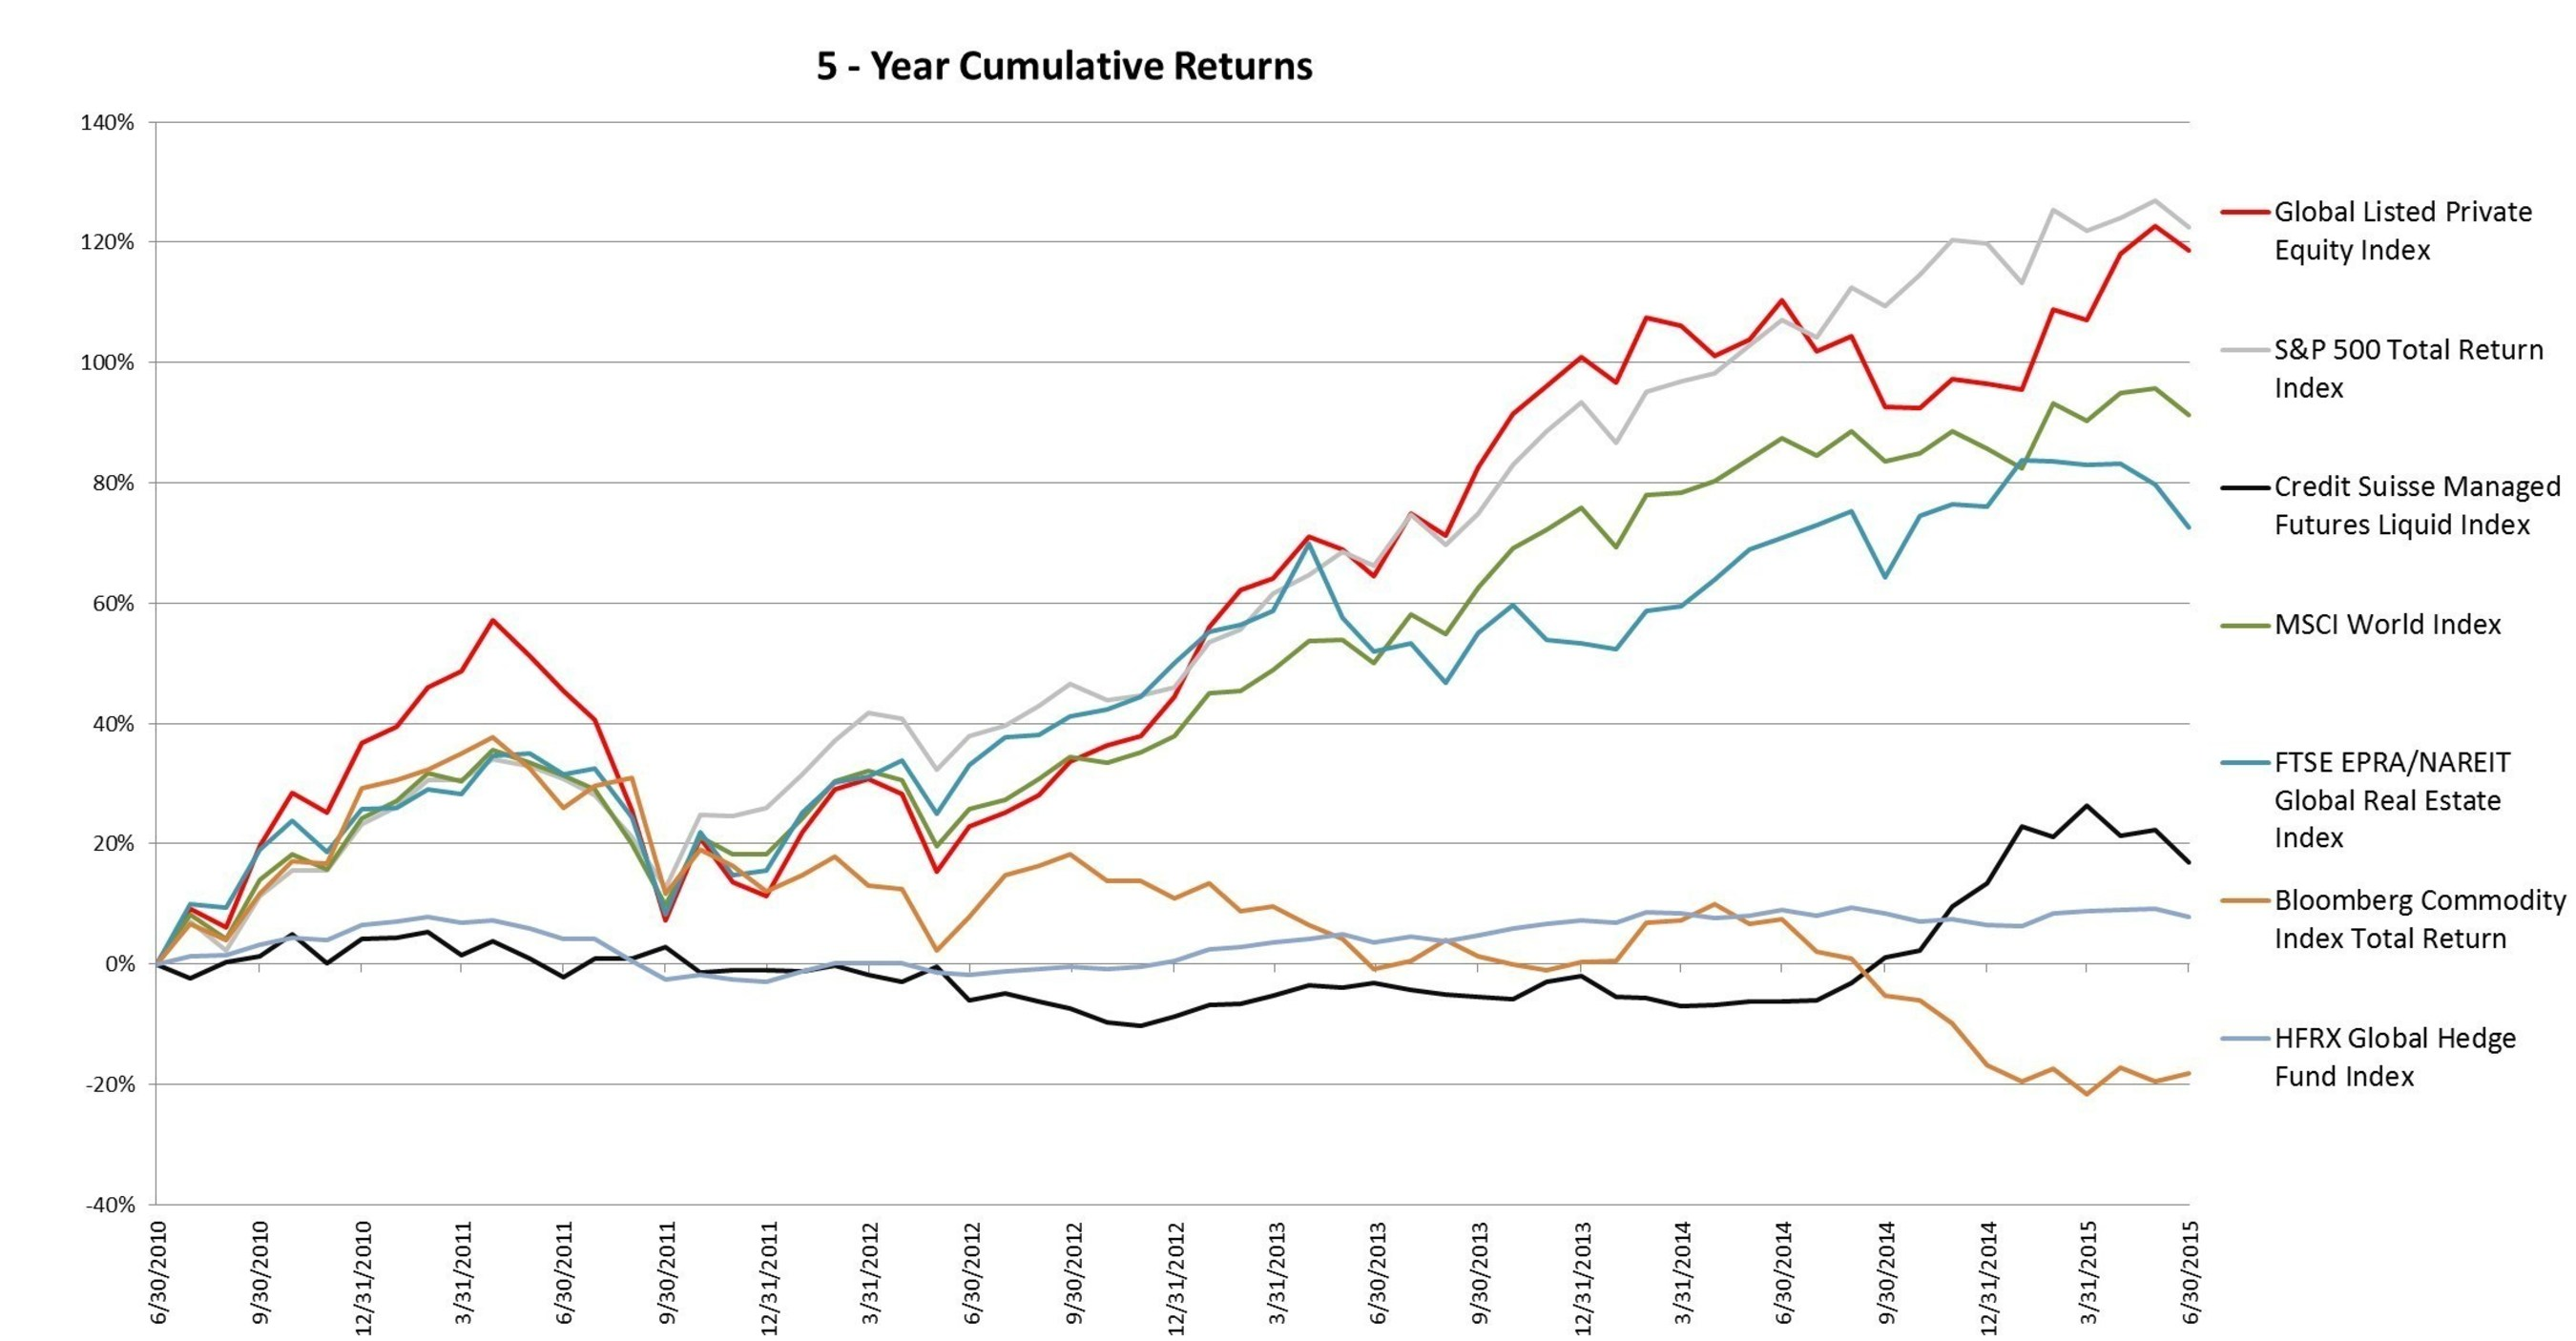 Global Listed Private Equity 5-Year Returns as of 6/30/2015